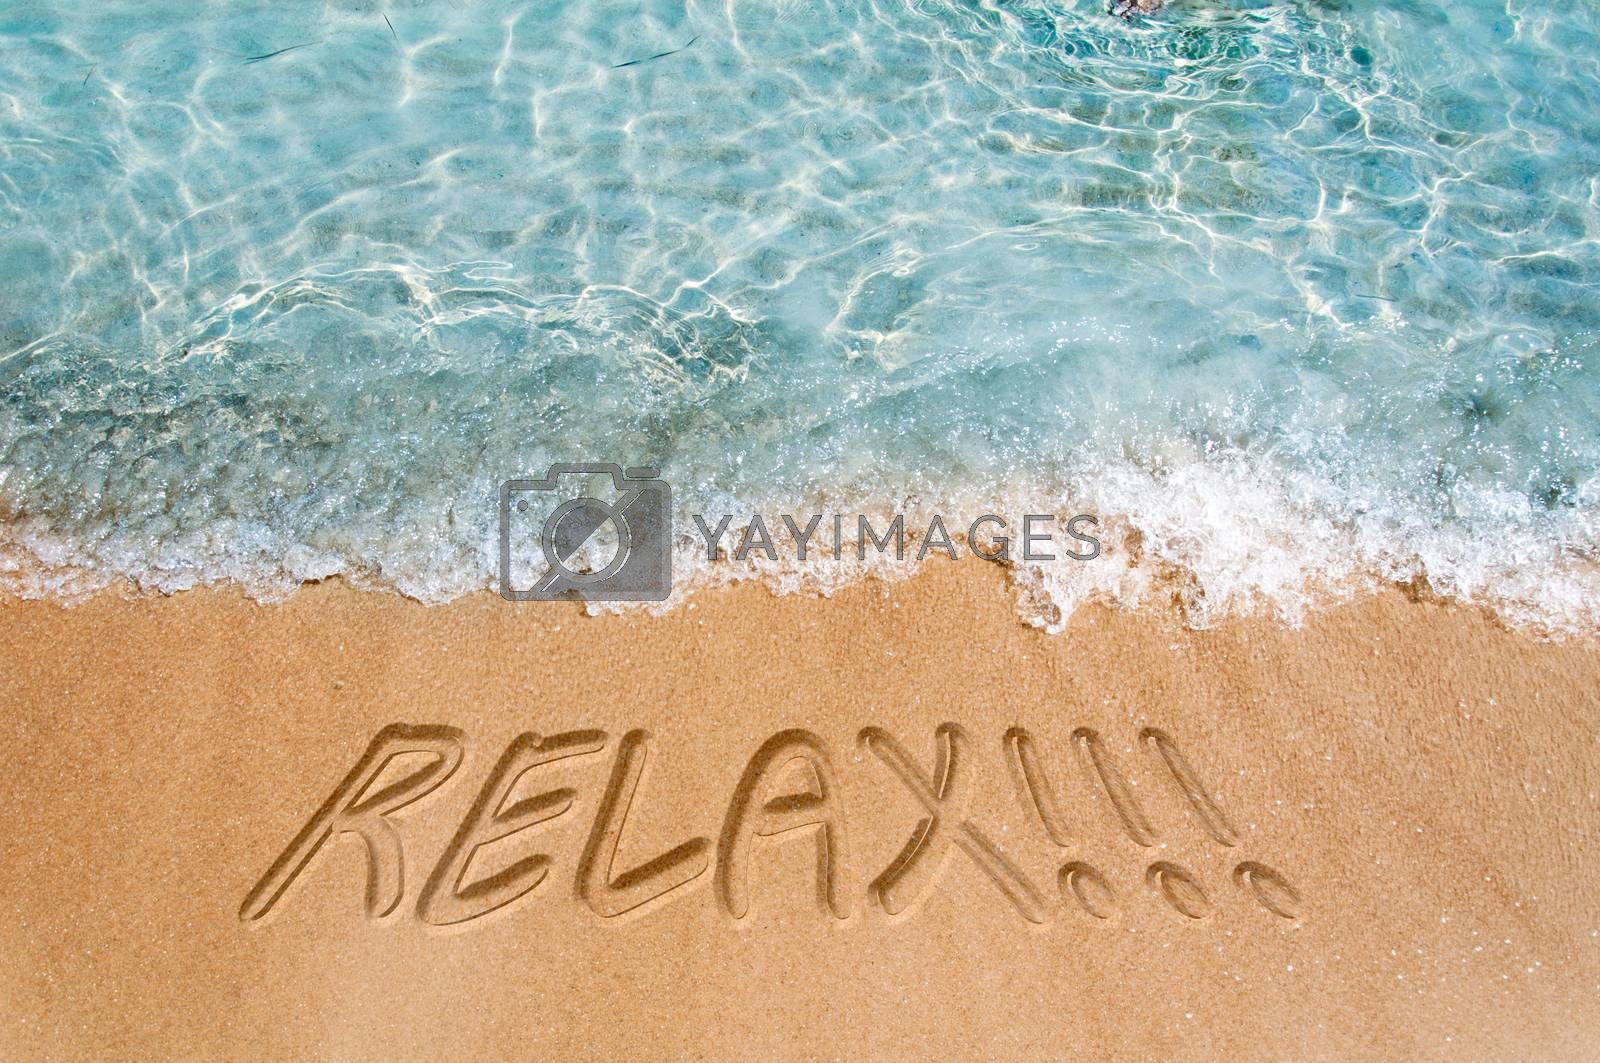 Relax concept by badmanproduction